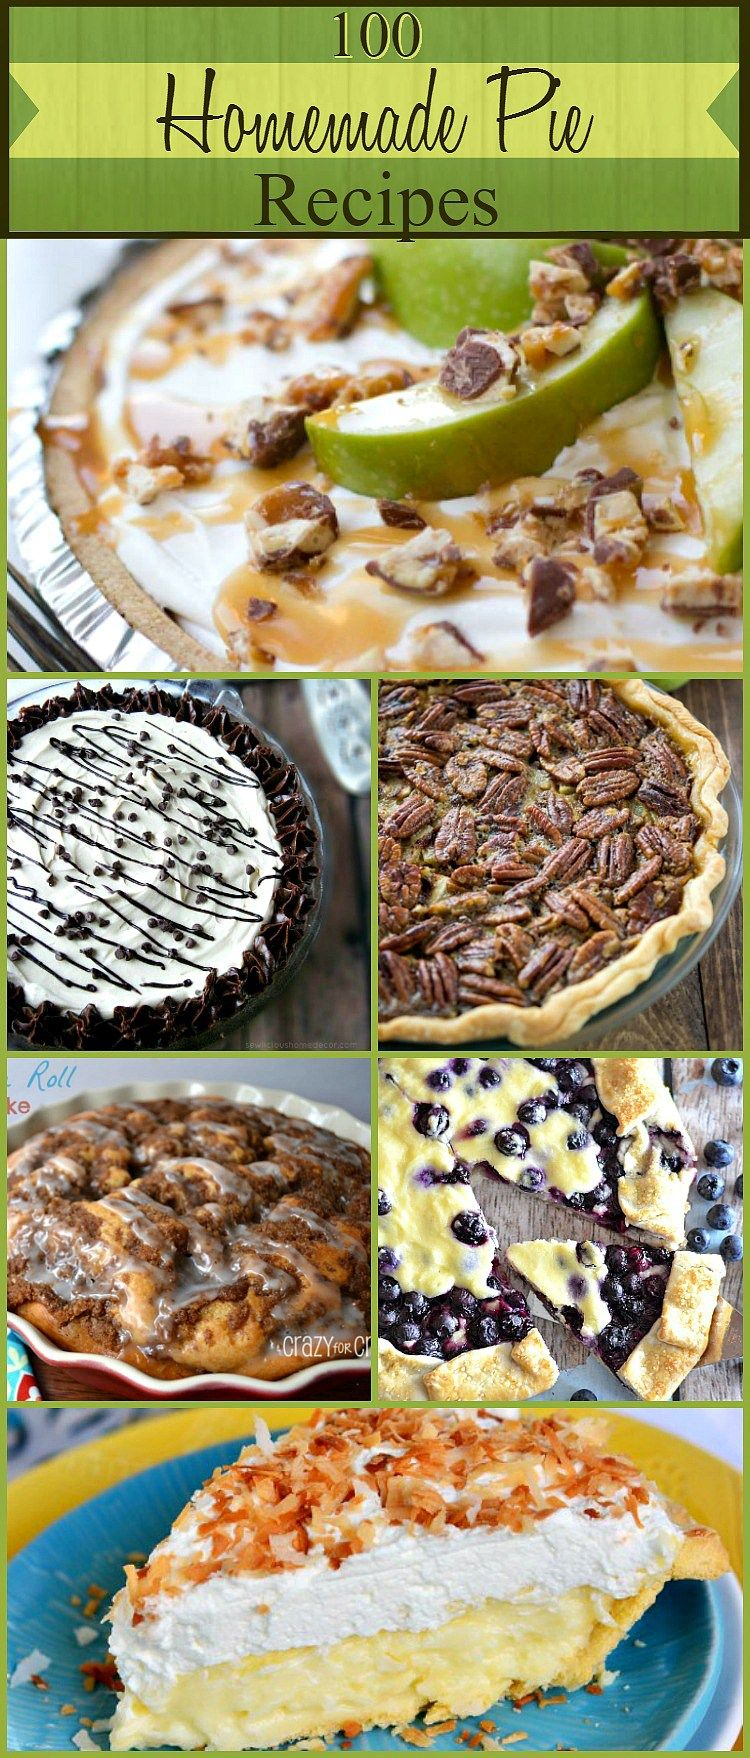 100 Creamy and Delicious Homemade Pie Recipes - SewLicious Home Decor